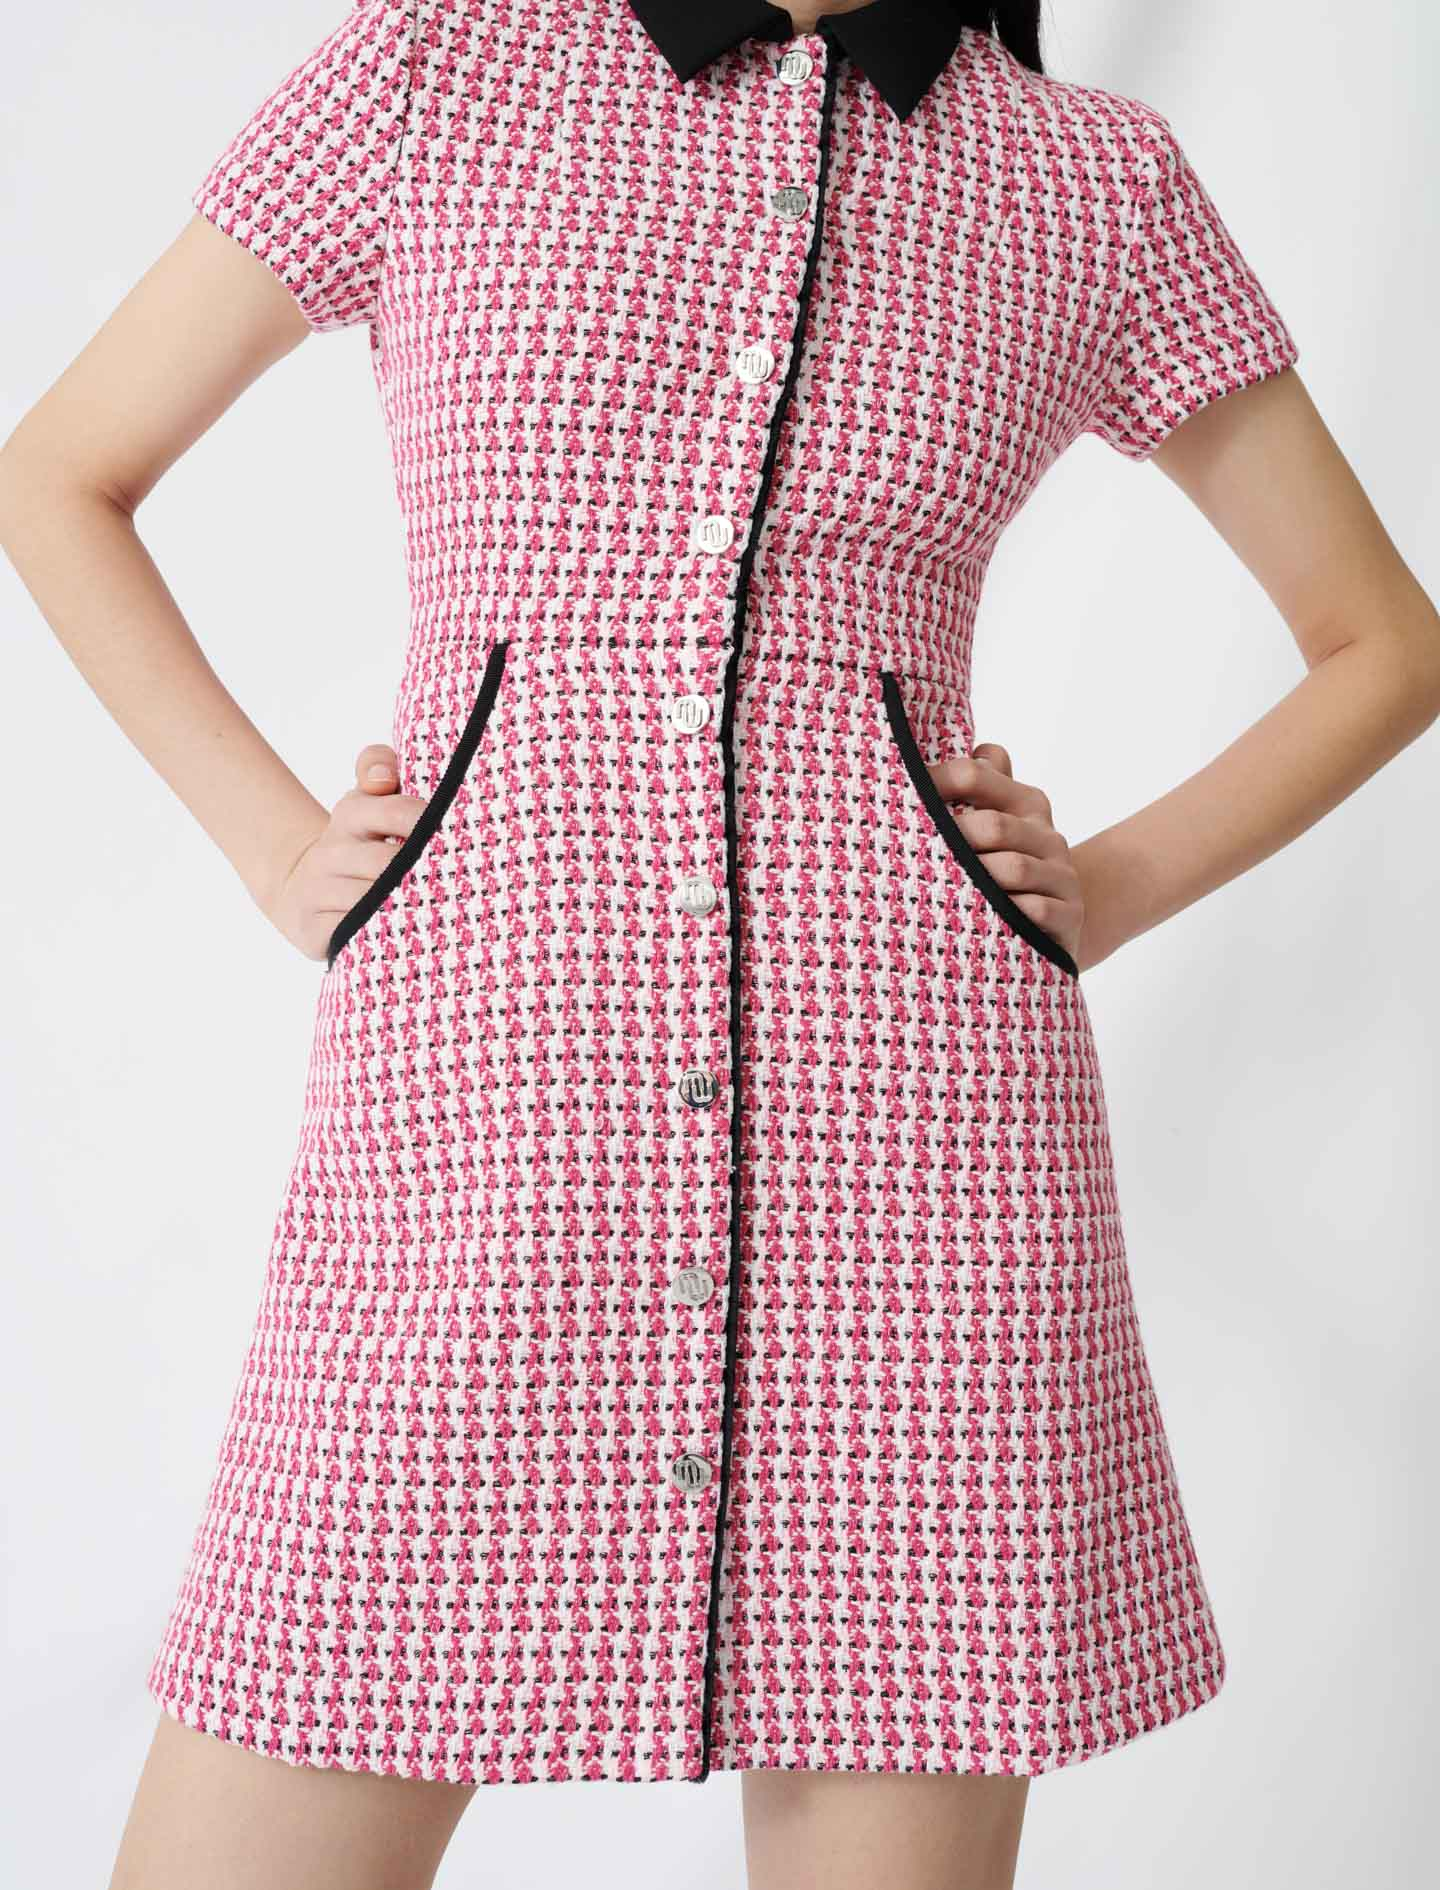 Tweed-style dress, contrasting details - Pink